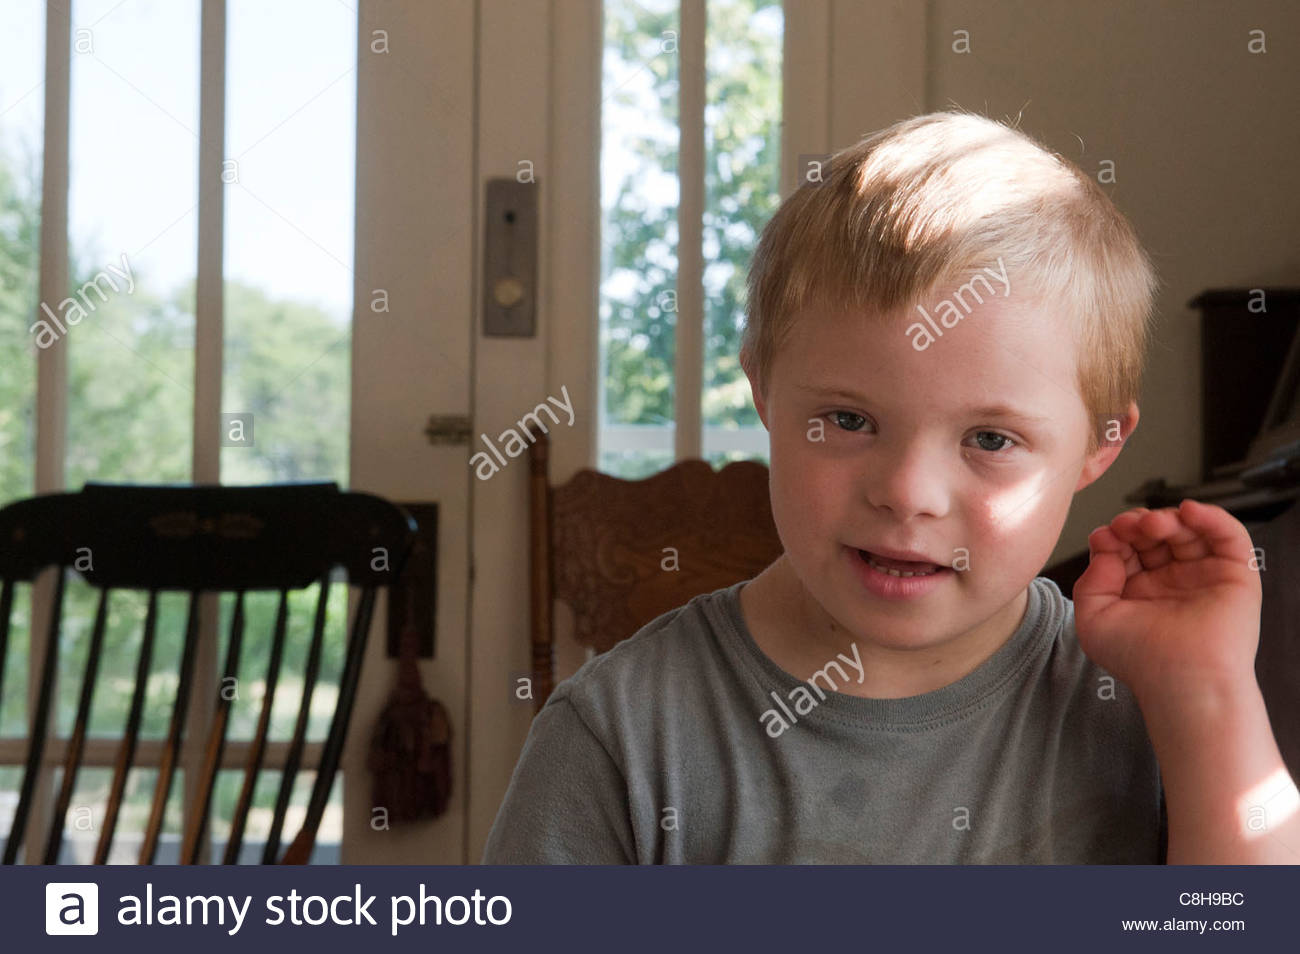 Portrait of a 6-year-old boy in Wilson, Kansas. - Stock Image